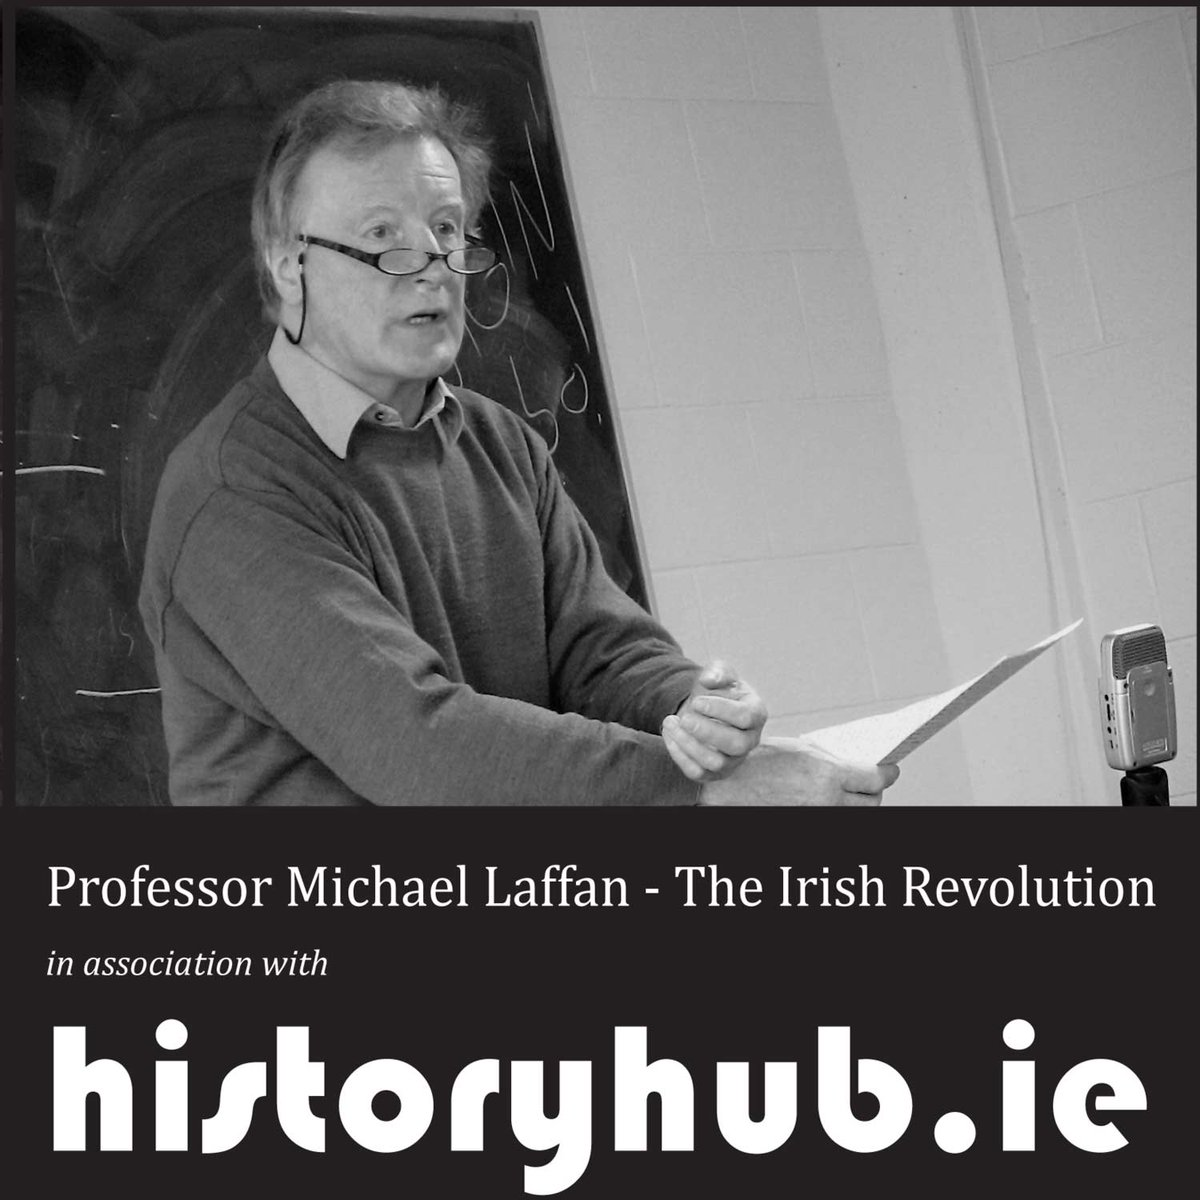 Big thanks to all of our contributors and subscribers. We have hit more than half a million downloads across all of our podcast series. Thanks for listening! historyhub.ie/our-podcasts